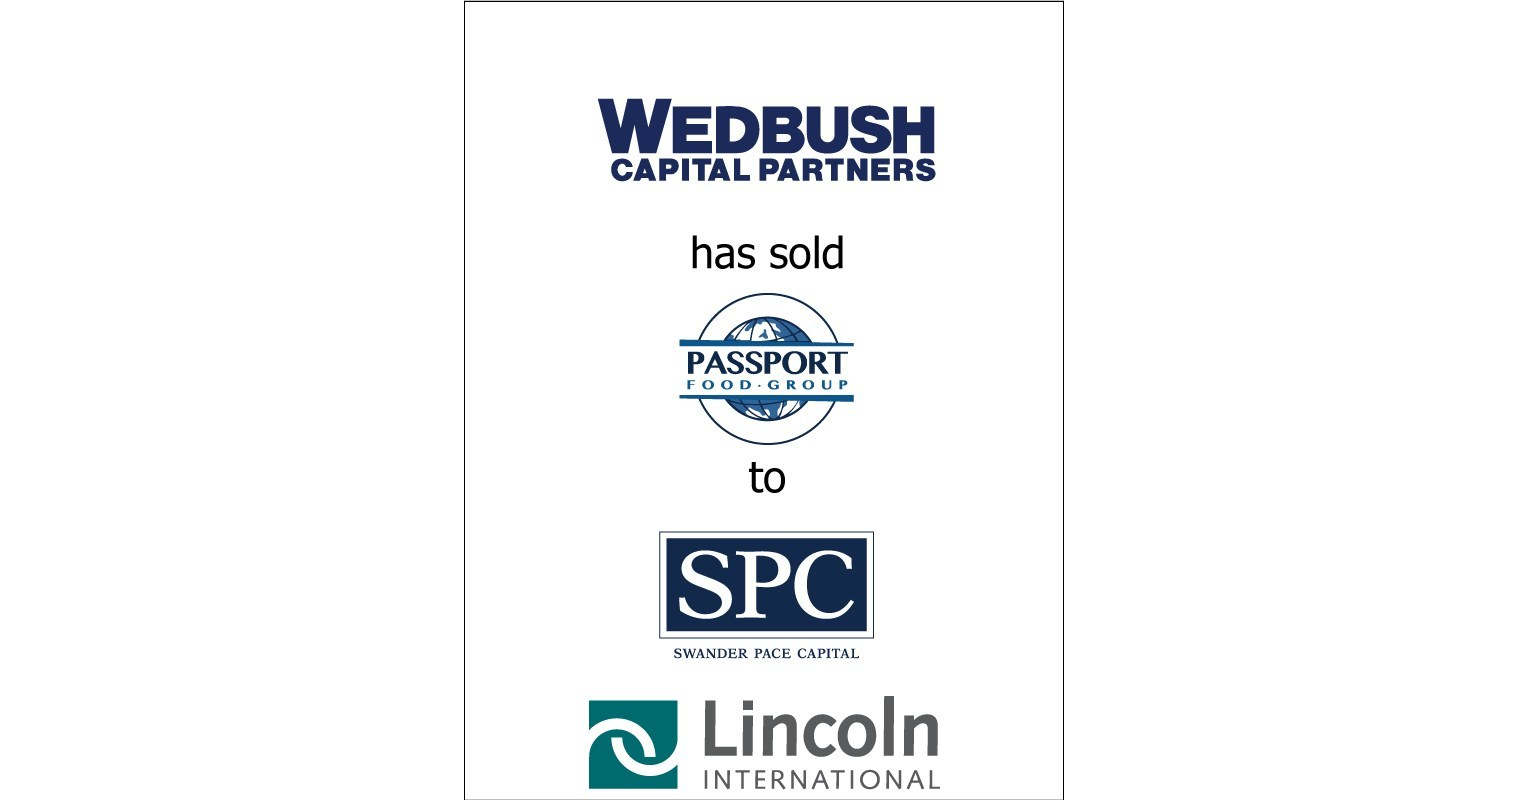 Lincoln International Represents Wedbush Capital Partners